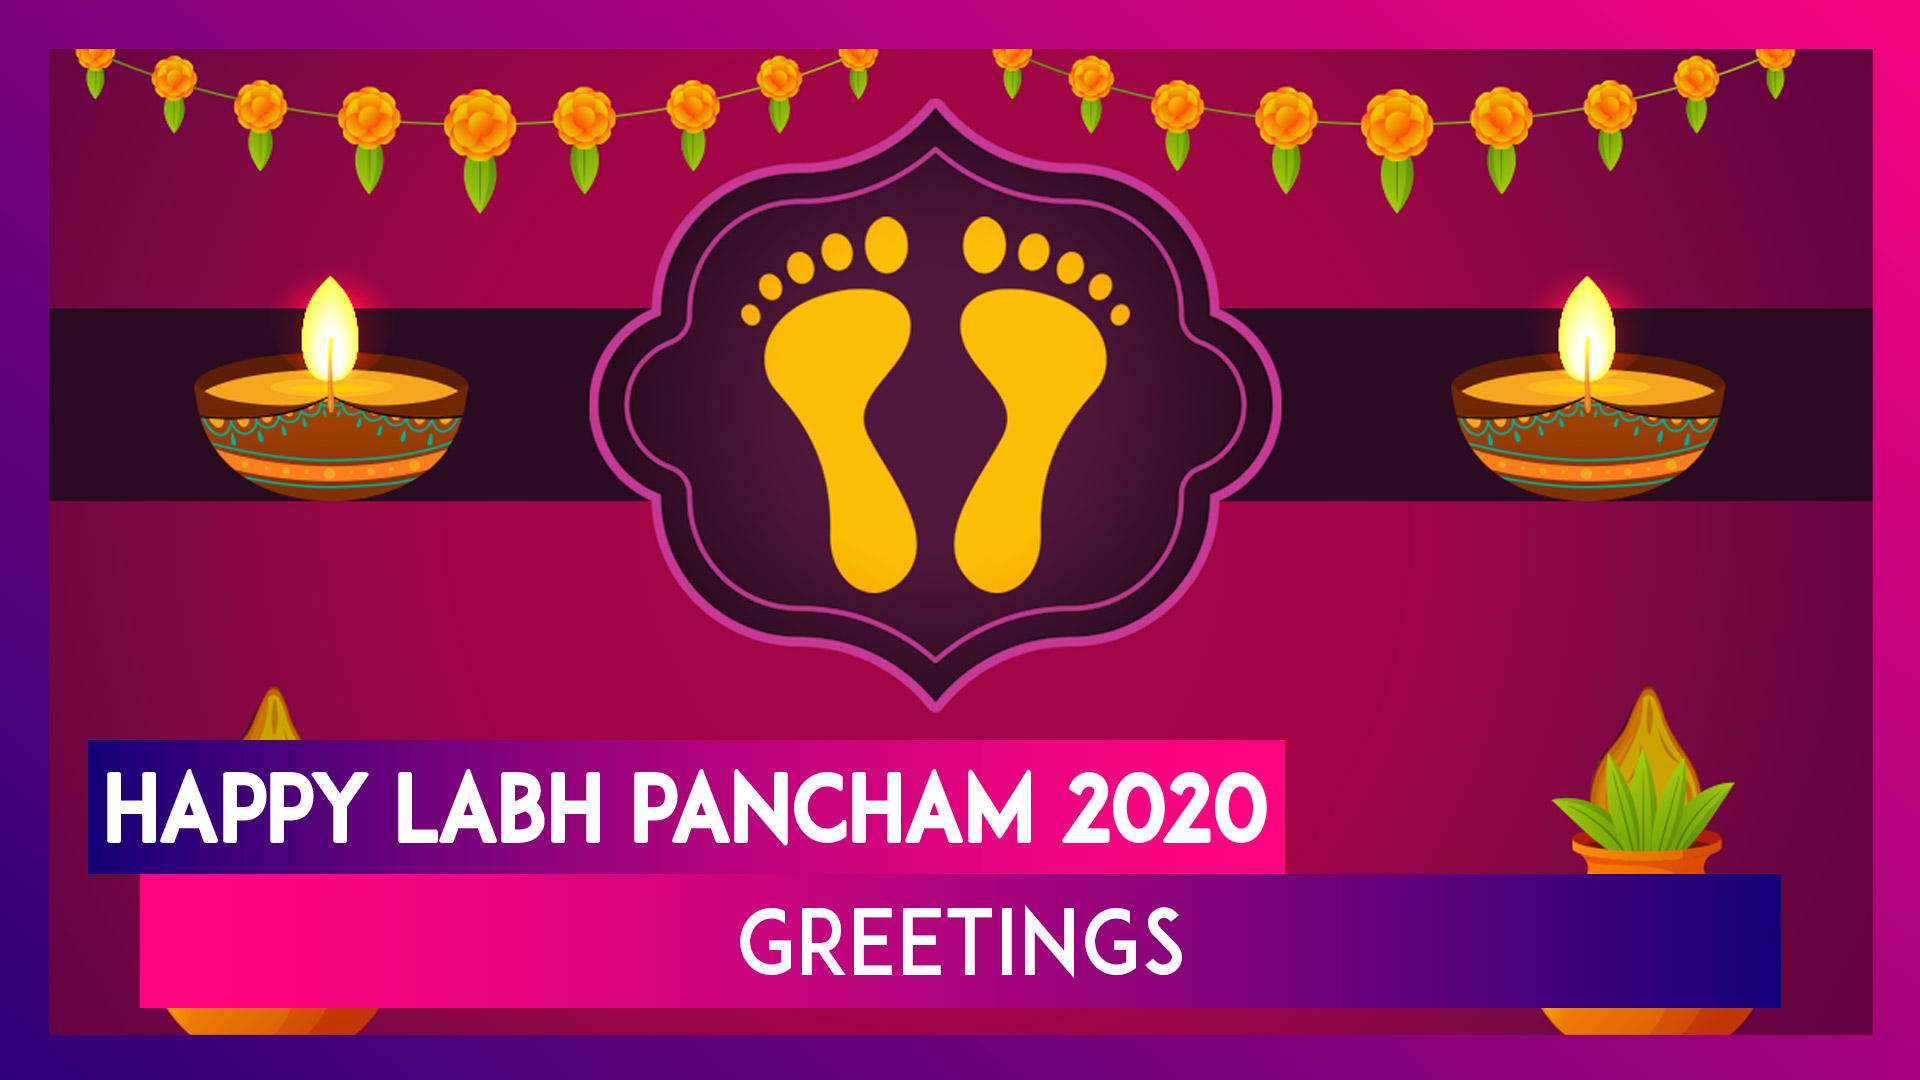 Happy Labh Pancham 2020 Greetings: Celebrate Gyan Panchami With WhatsApp Messages, Images and Wishes